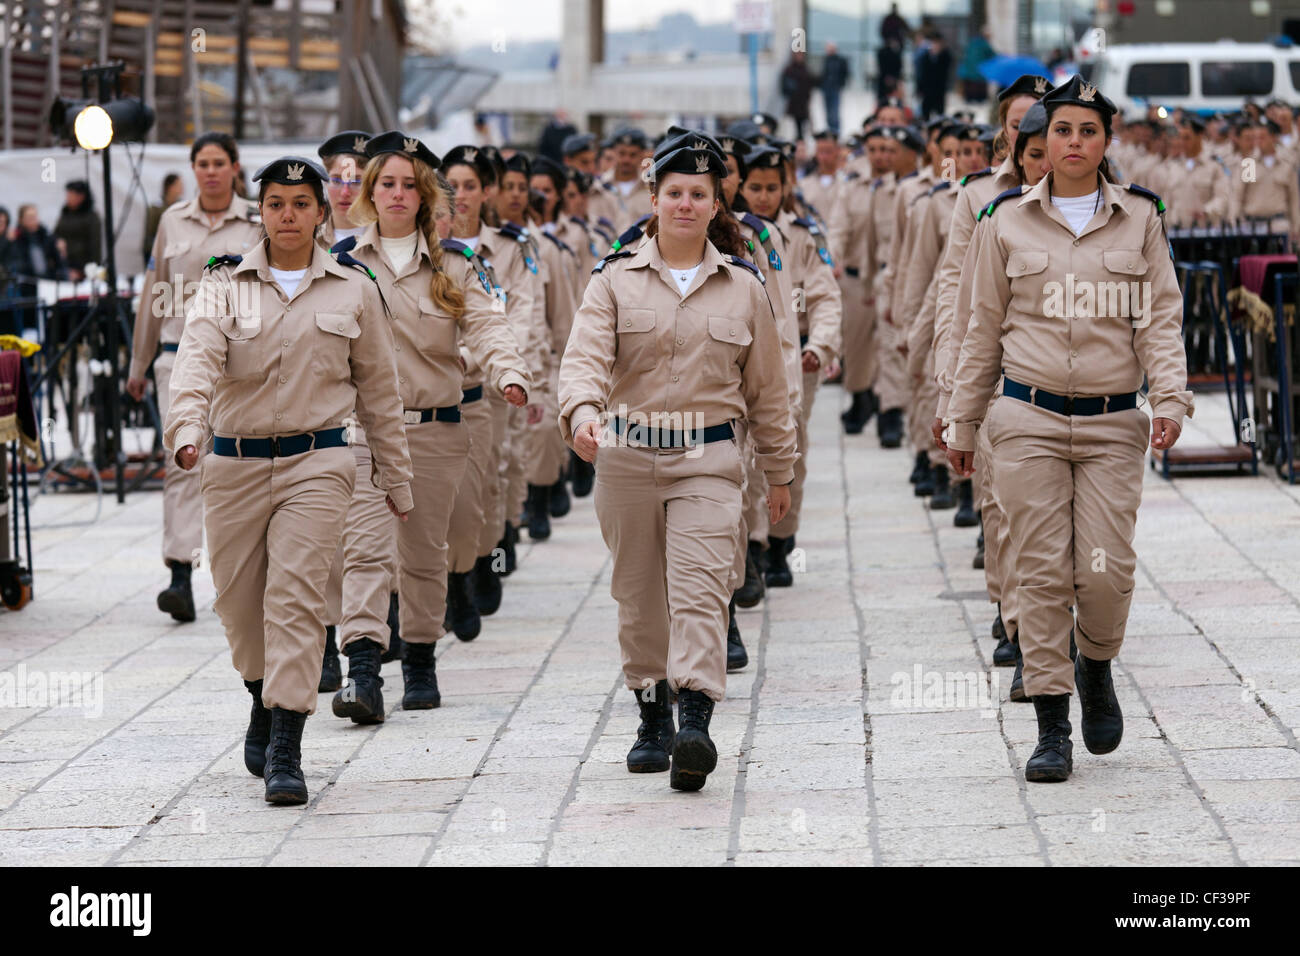 Israel,Jerusalem,Wailing Wall, women soldiers on parade - Stock Image